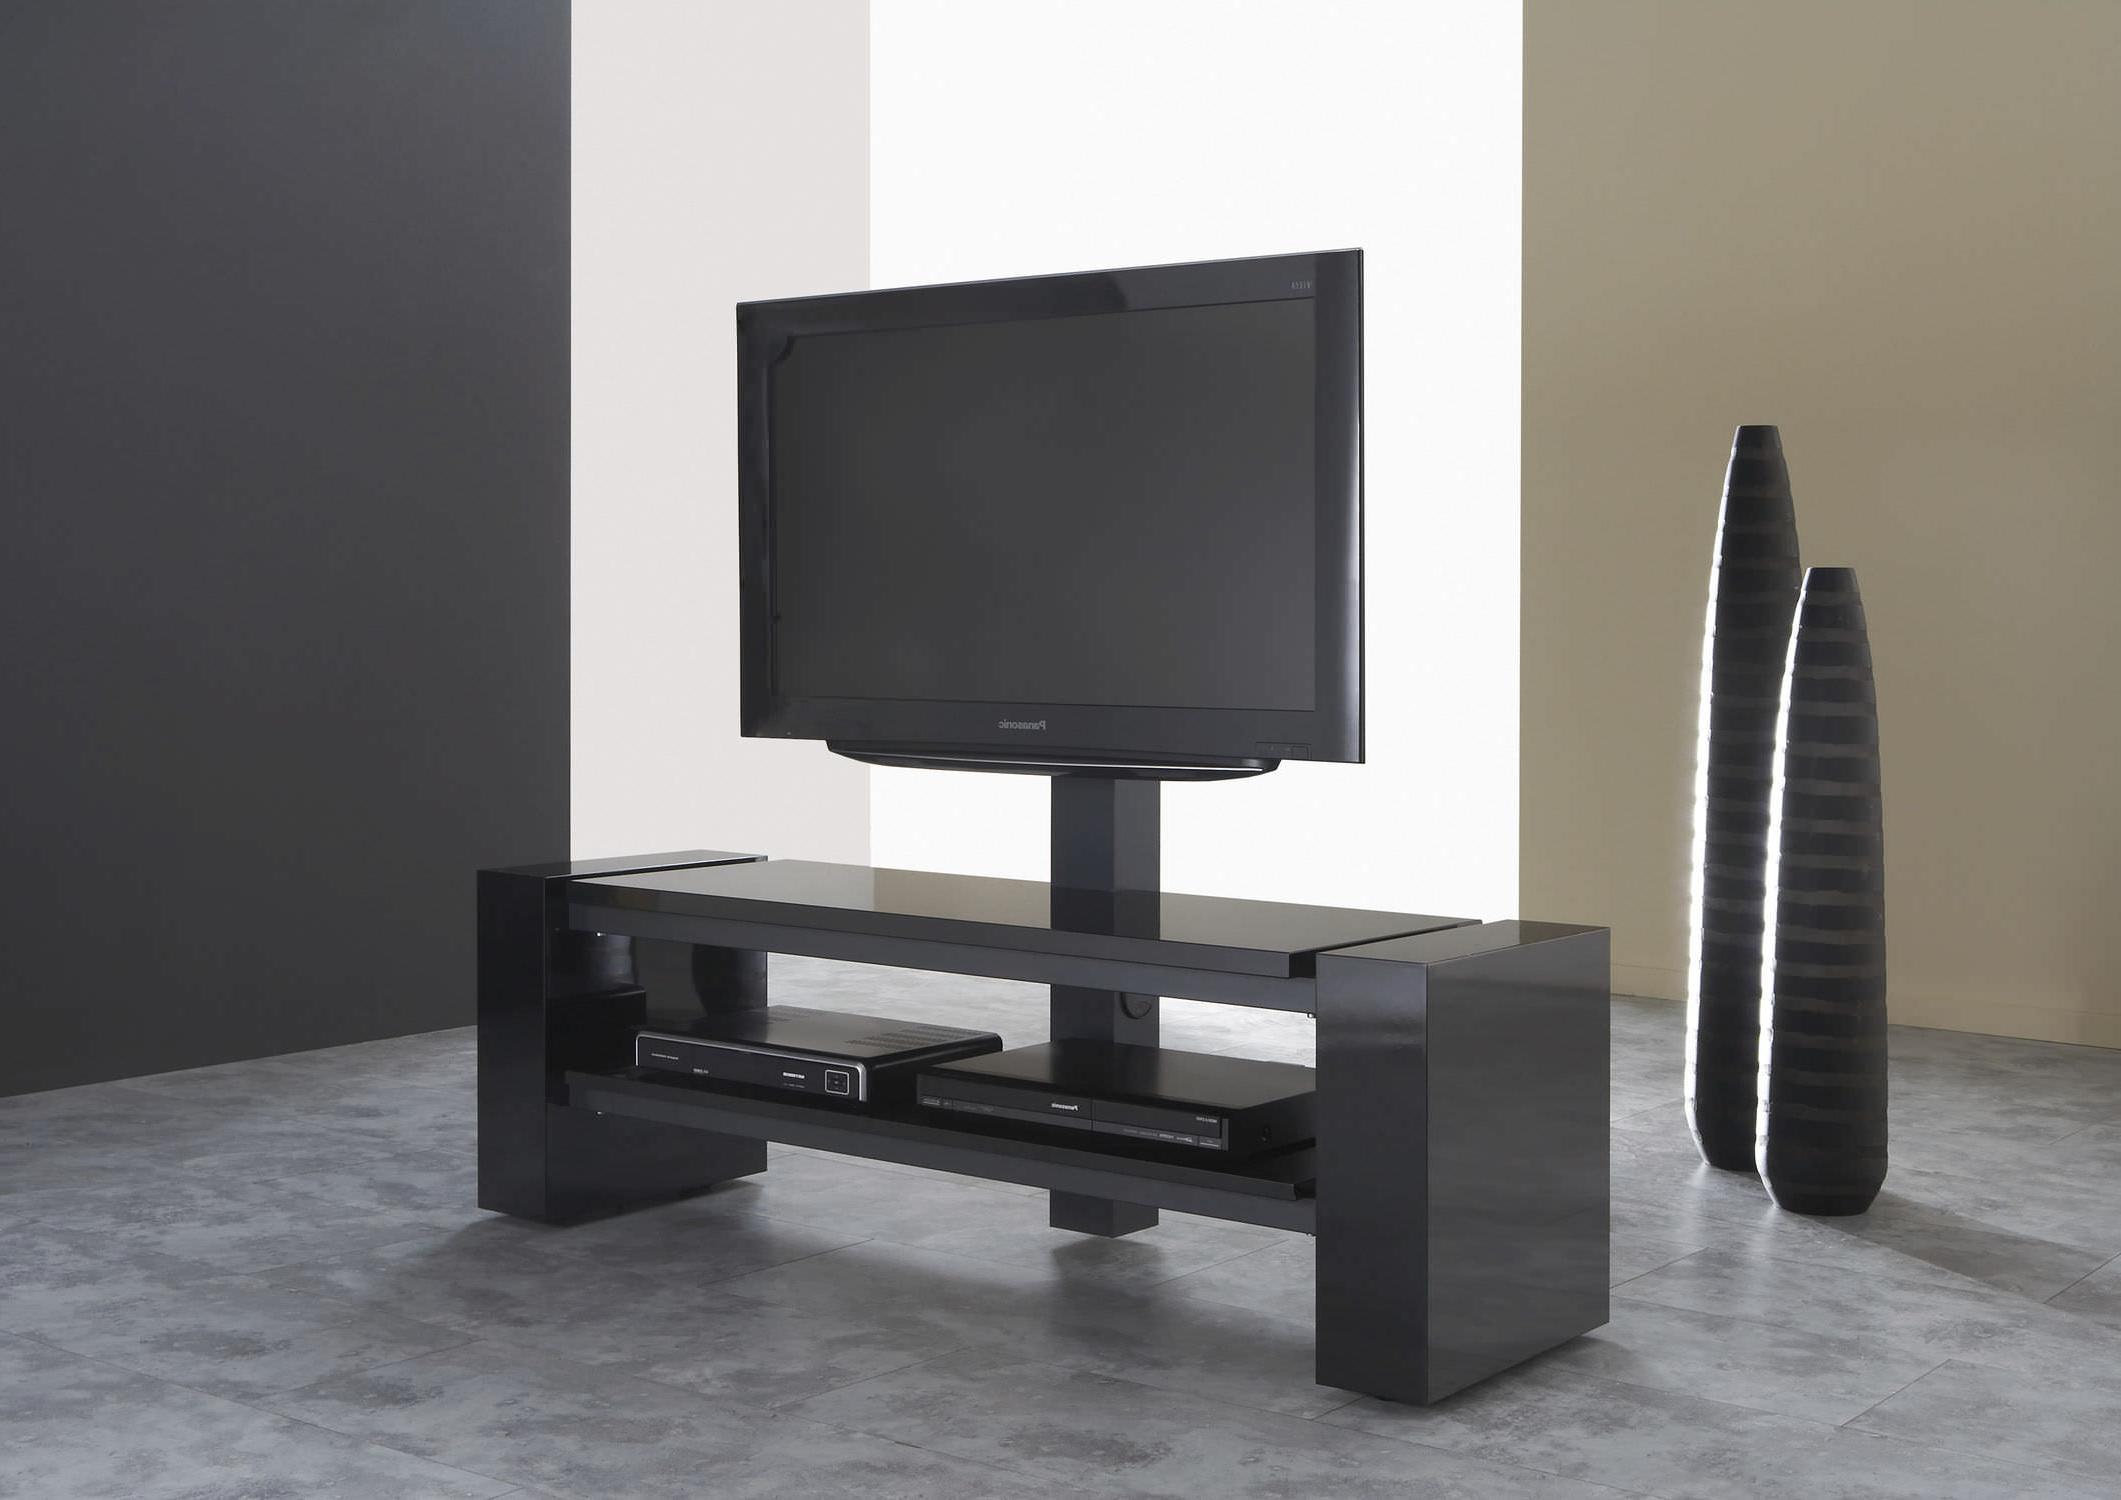 2018 Contemporary Tv Cabinets For Flat Screens Intended For Contemporary Tv Cabinet / With Screen Lift / Wooden / Lacquered Wood (View 20 of 20)